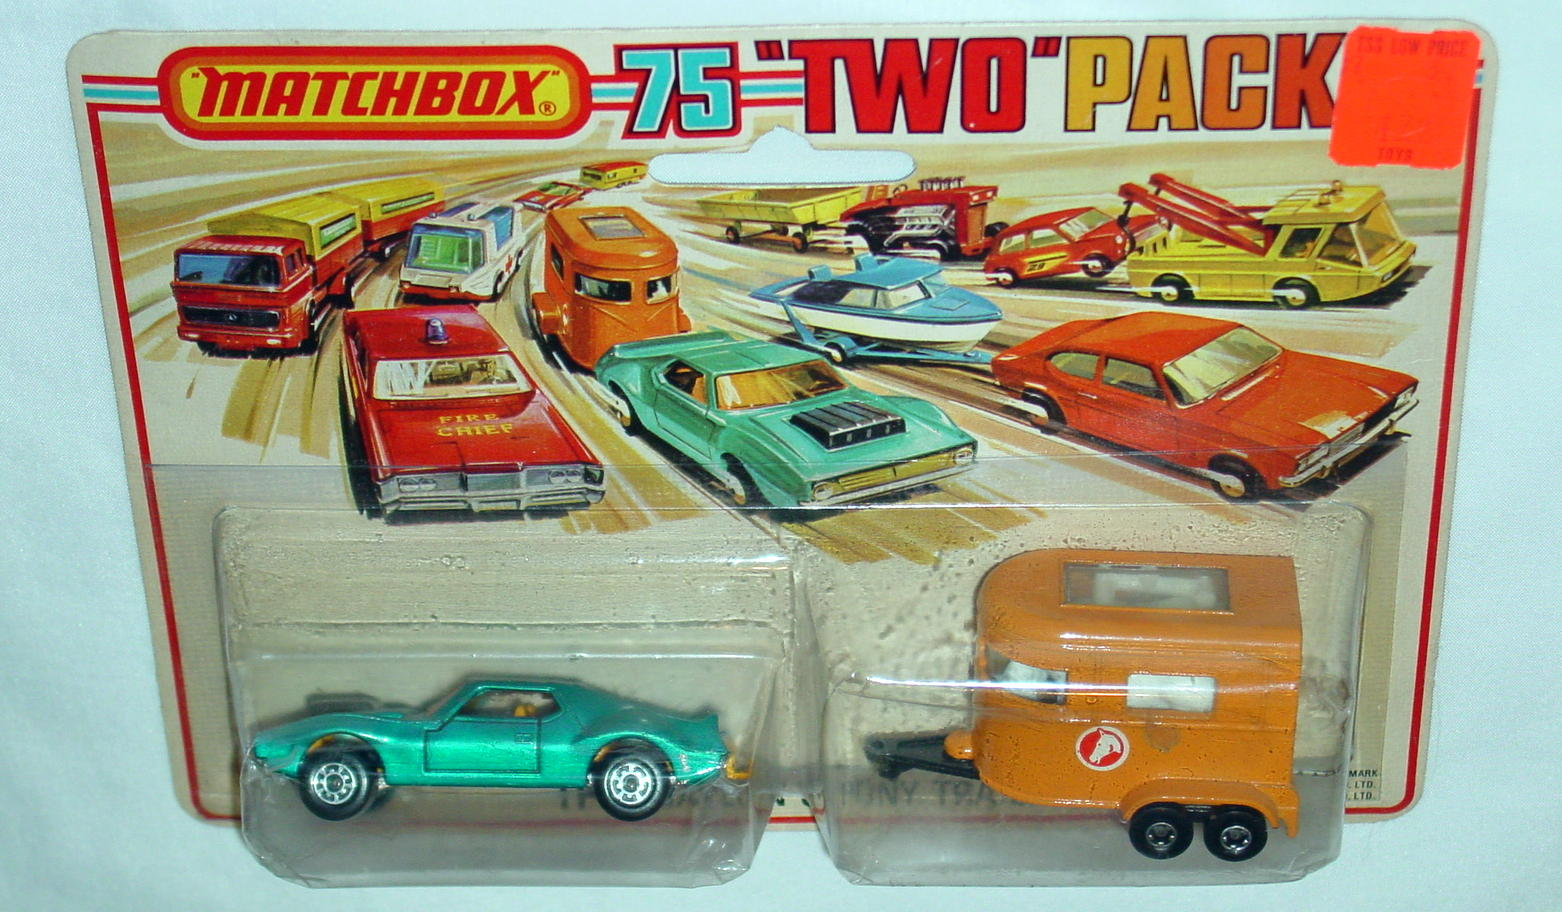 Twin Pack 03 A 2 - met Blue 9B13 Javelin orange 43A3 Pony trailer C9+ Tall